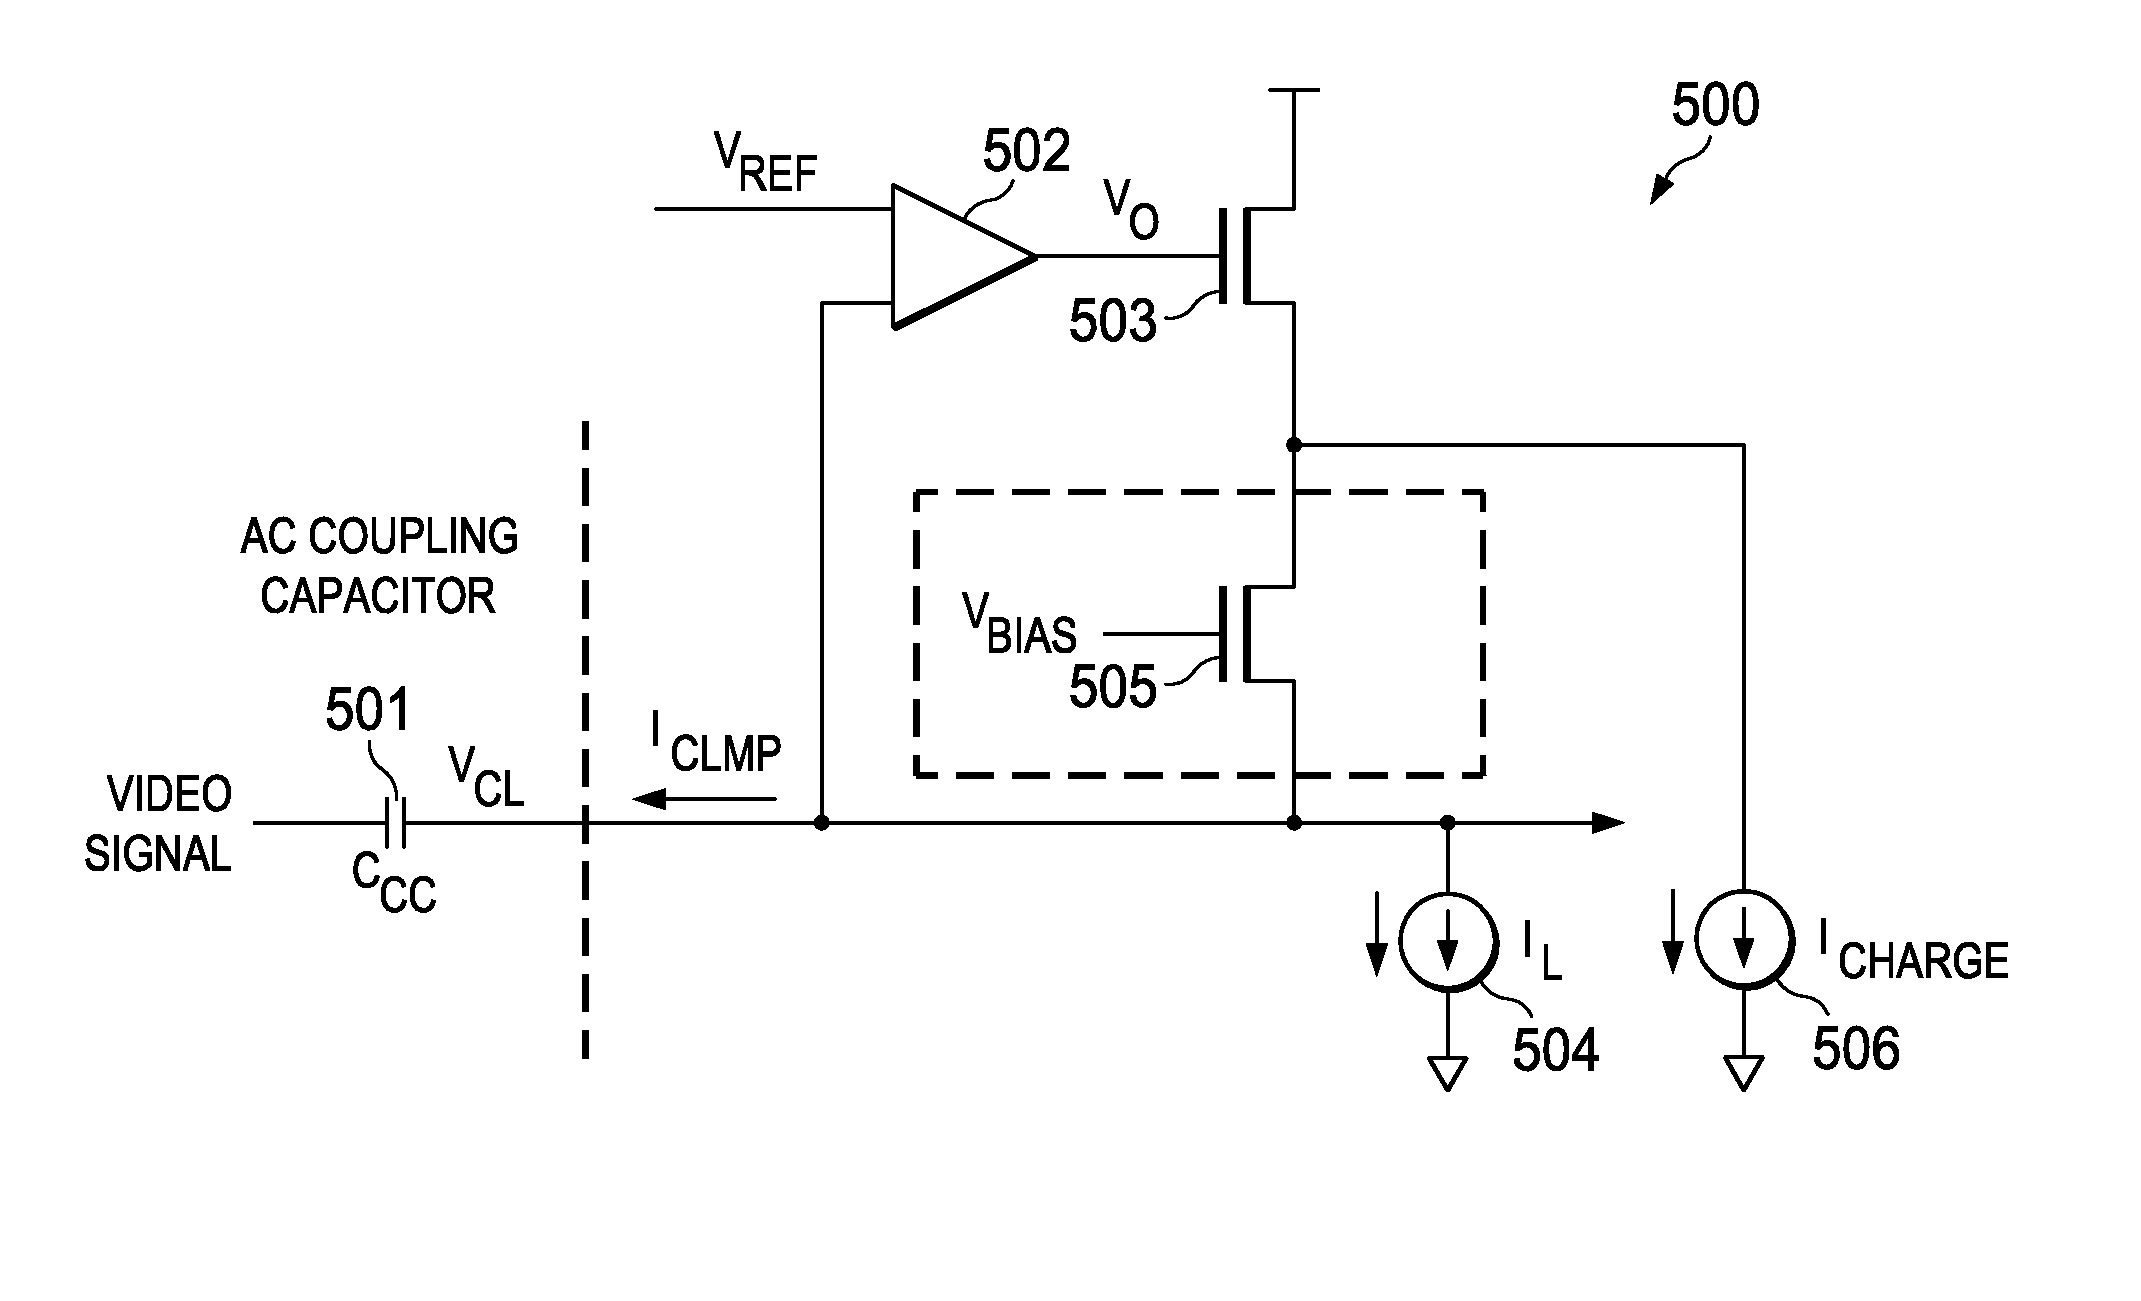 Brevet Us8063688 Ac Clamp Circuit For Video Applications Google How To Place A Coupling Capacitor In Patent Drawing